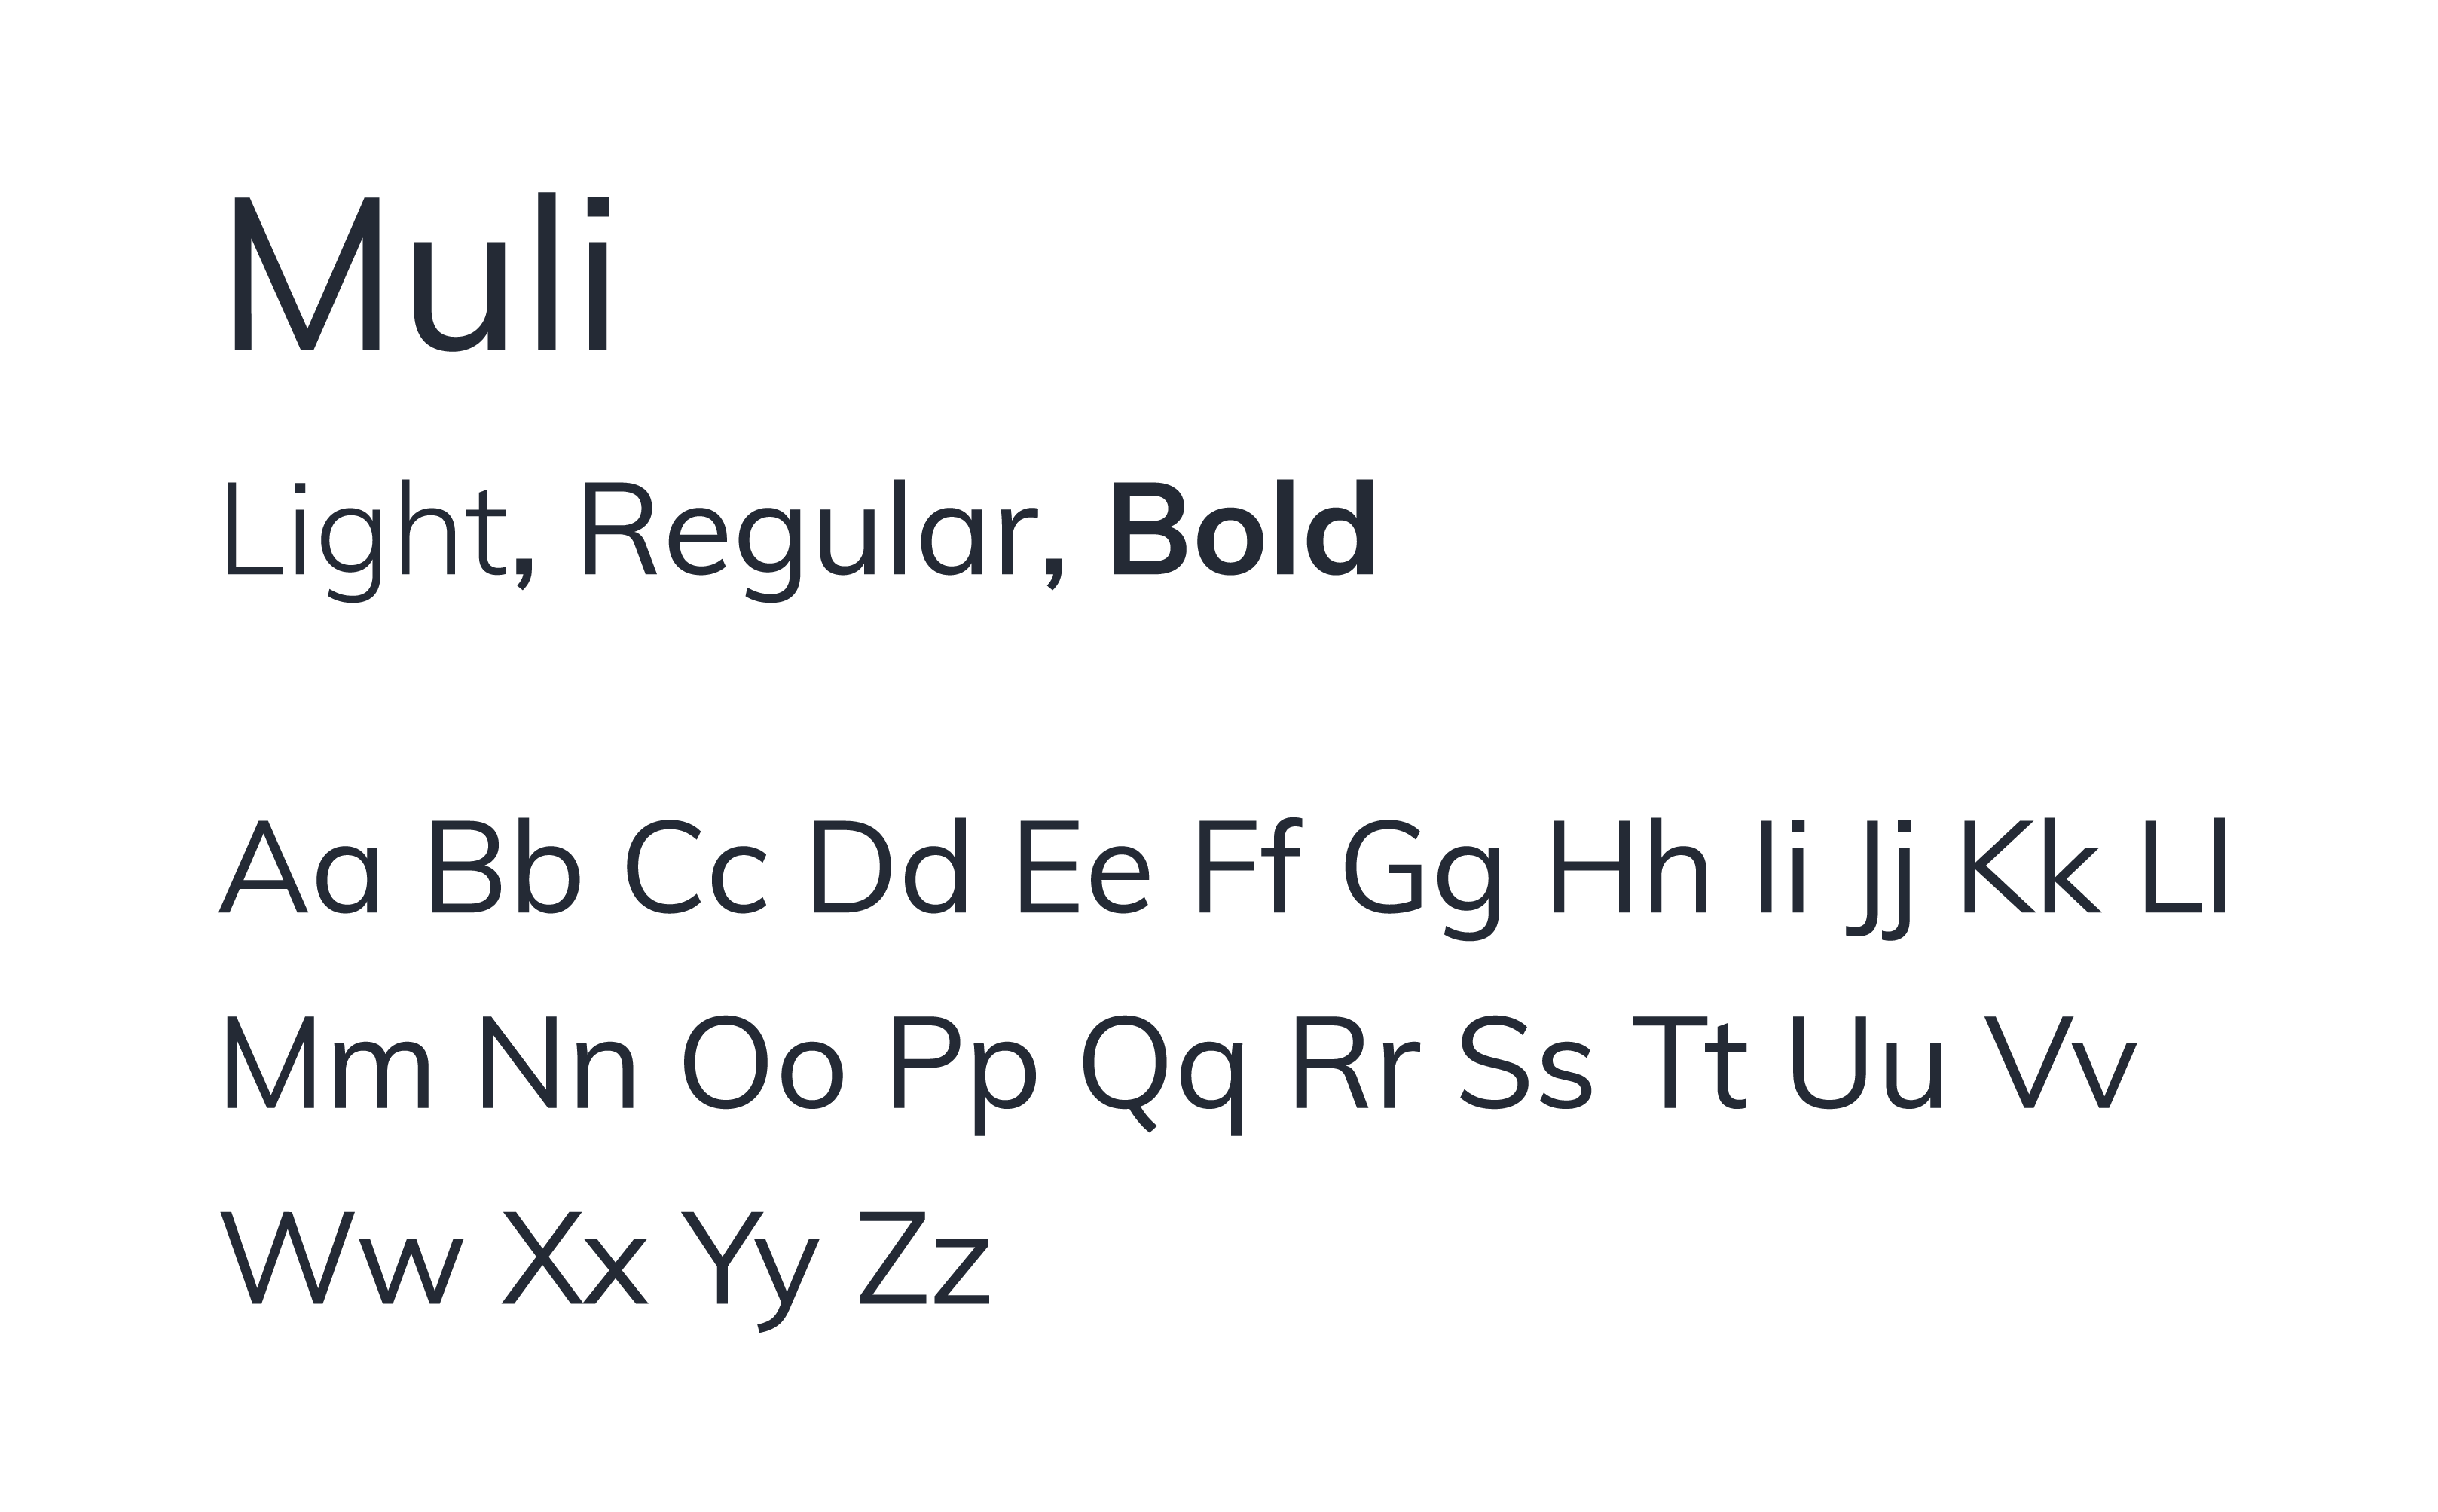 This image shows our brand typeface Muli in multiple weights and cases.